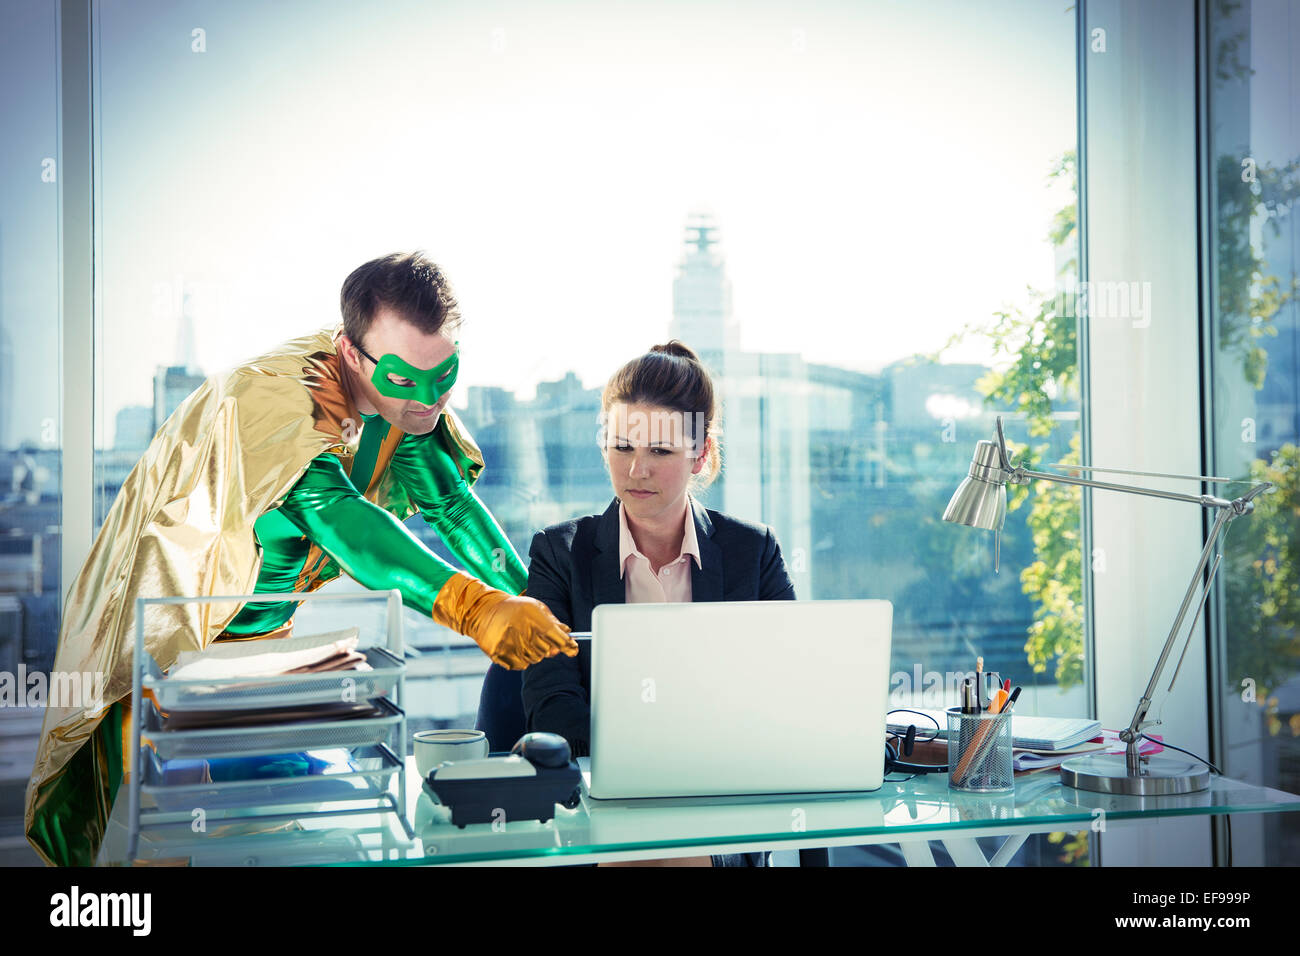 Superhero helping businesswoman working at office desk - Stock Image